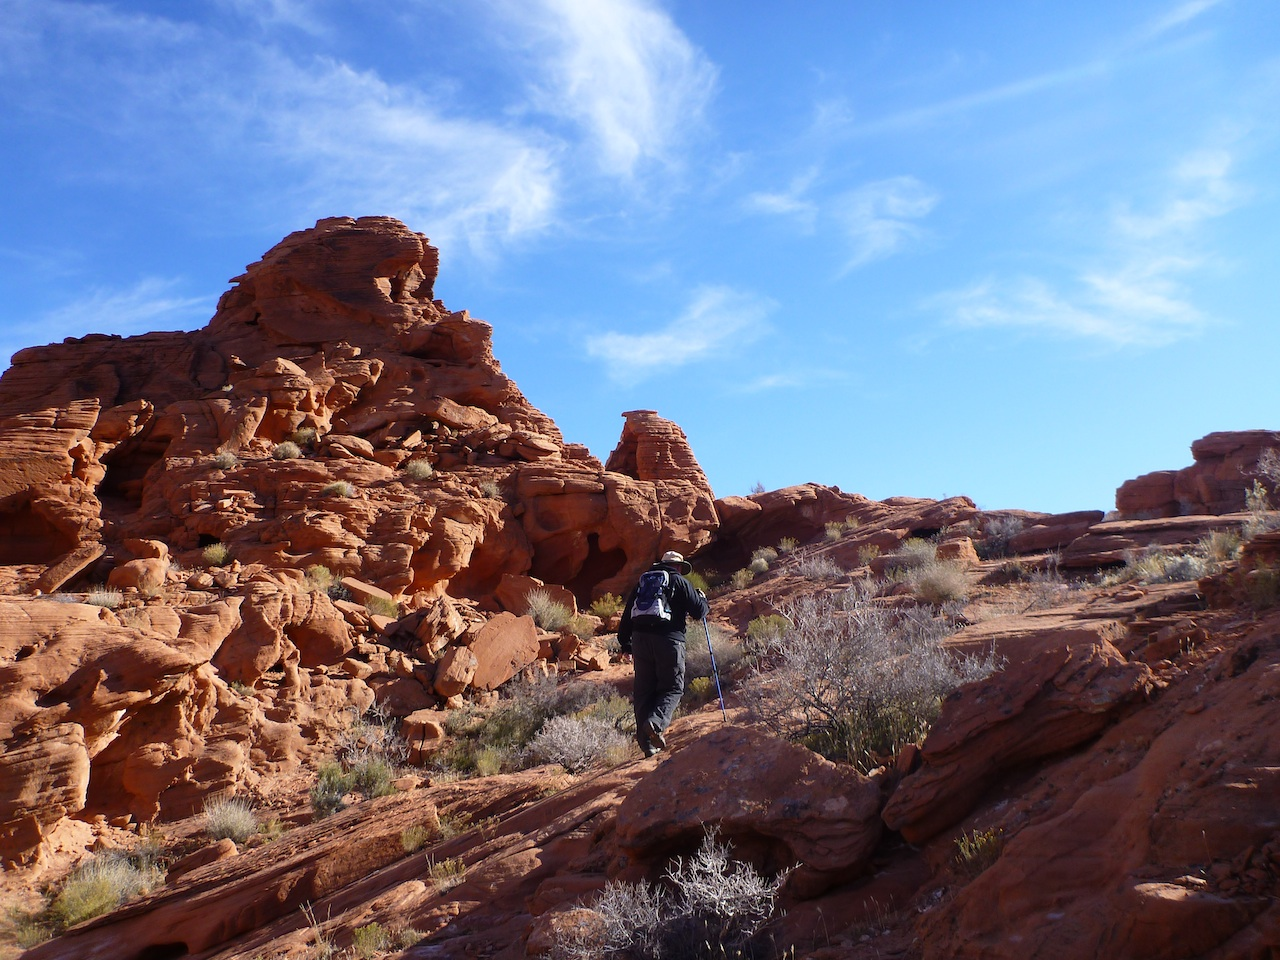 David Hiking Up One Of The Red Rock Mountains By The Campground In Valley Of Fire State Park